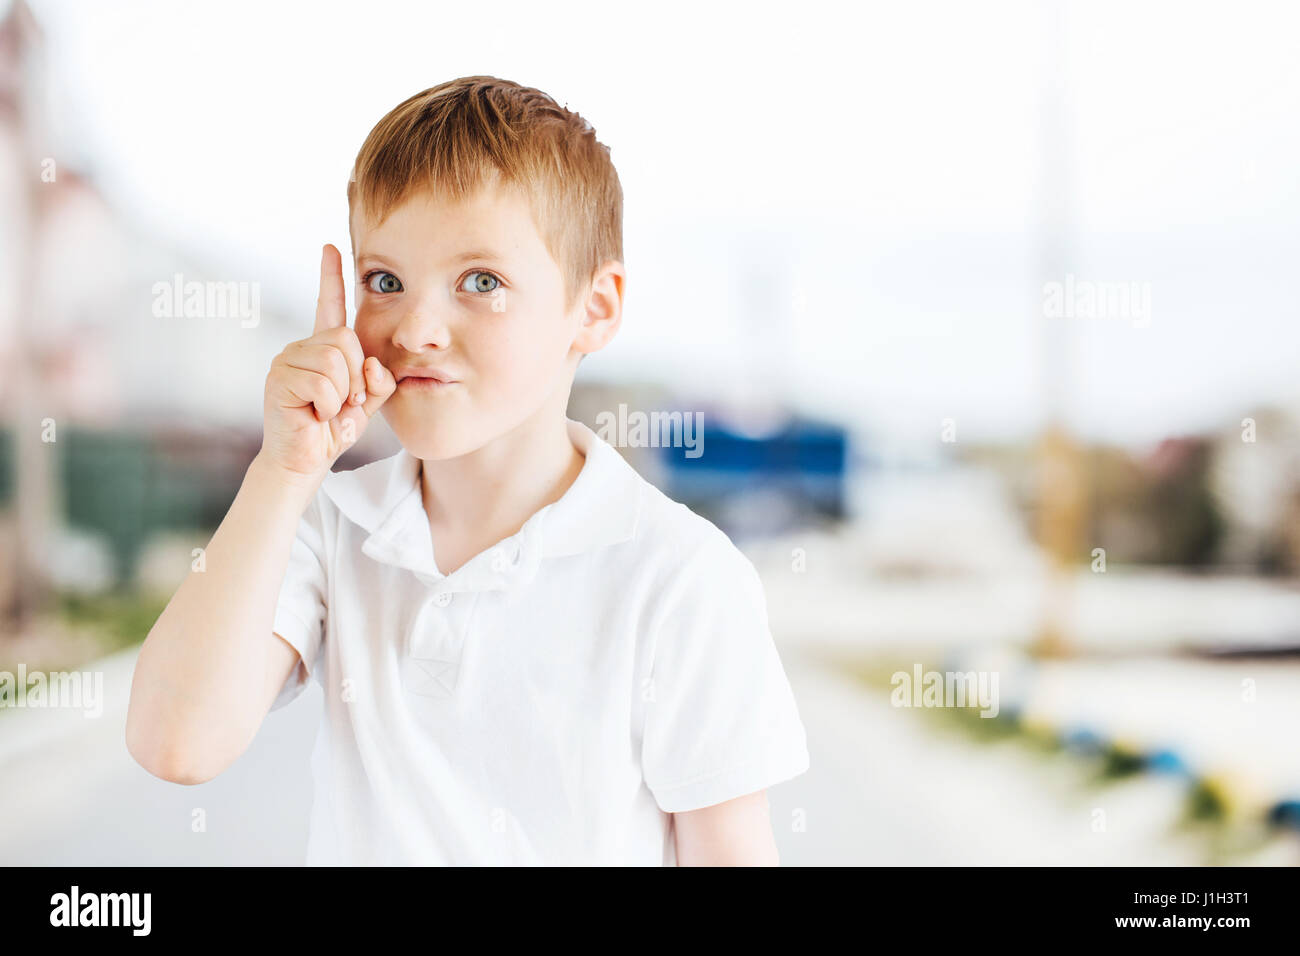 little boy show emotions at park background with light stock photo